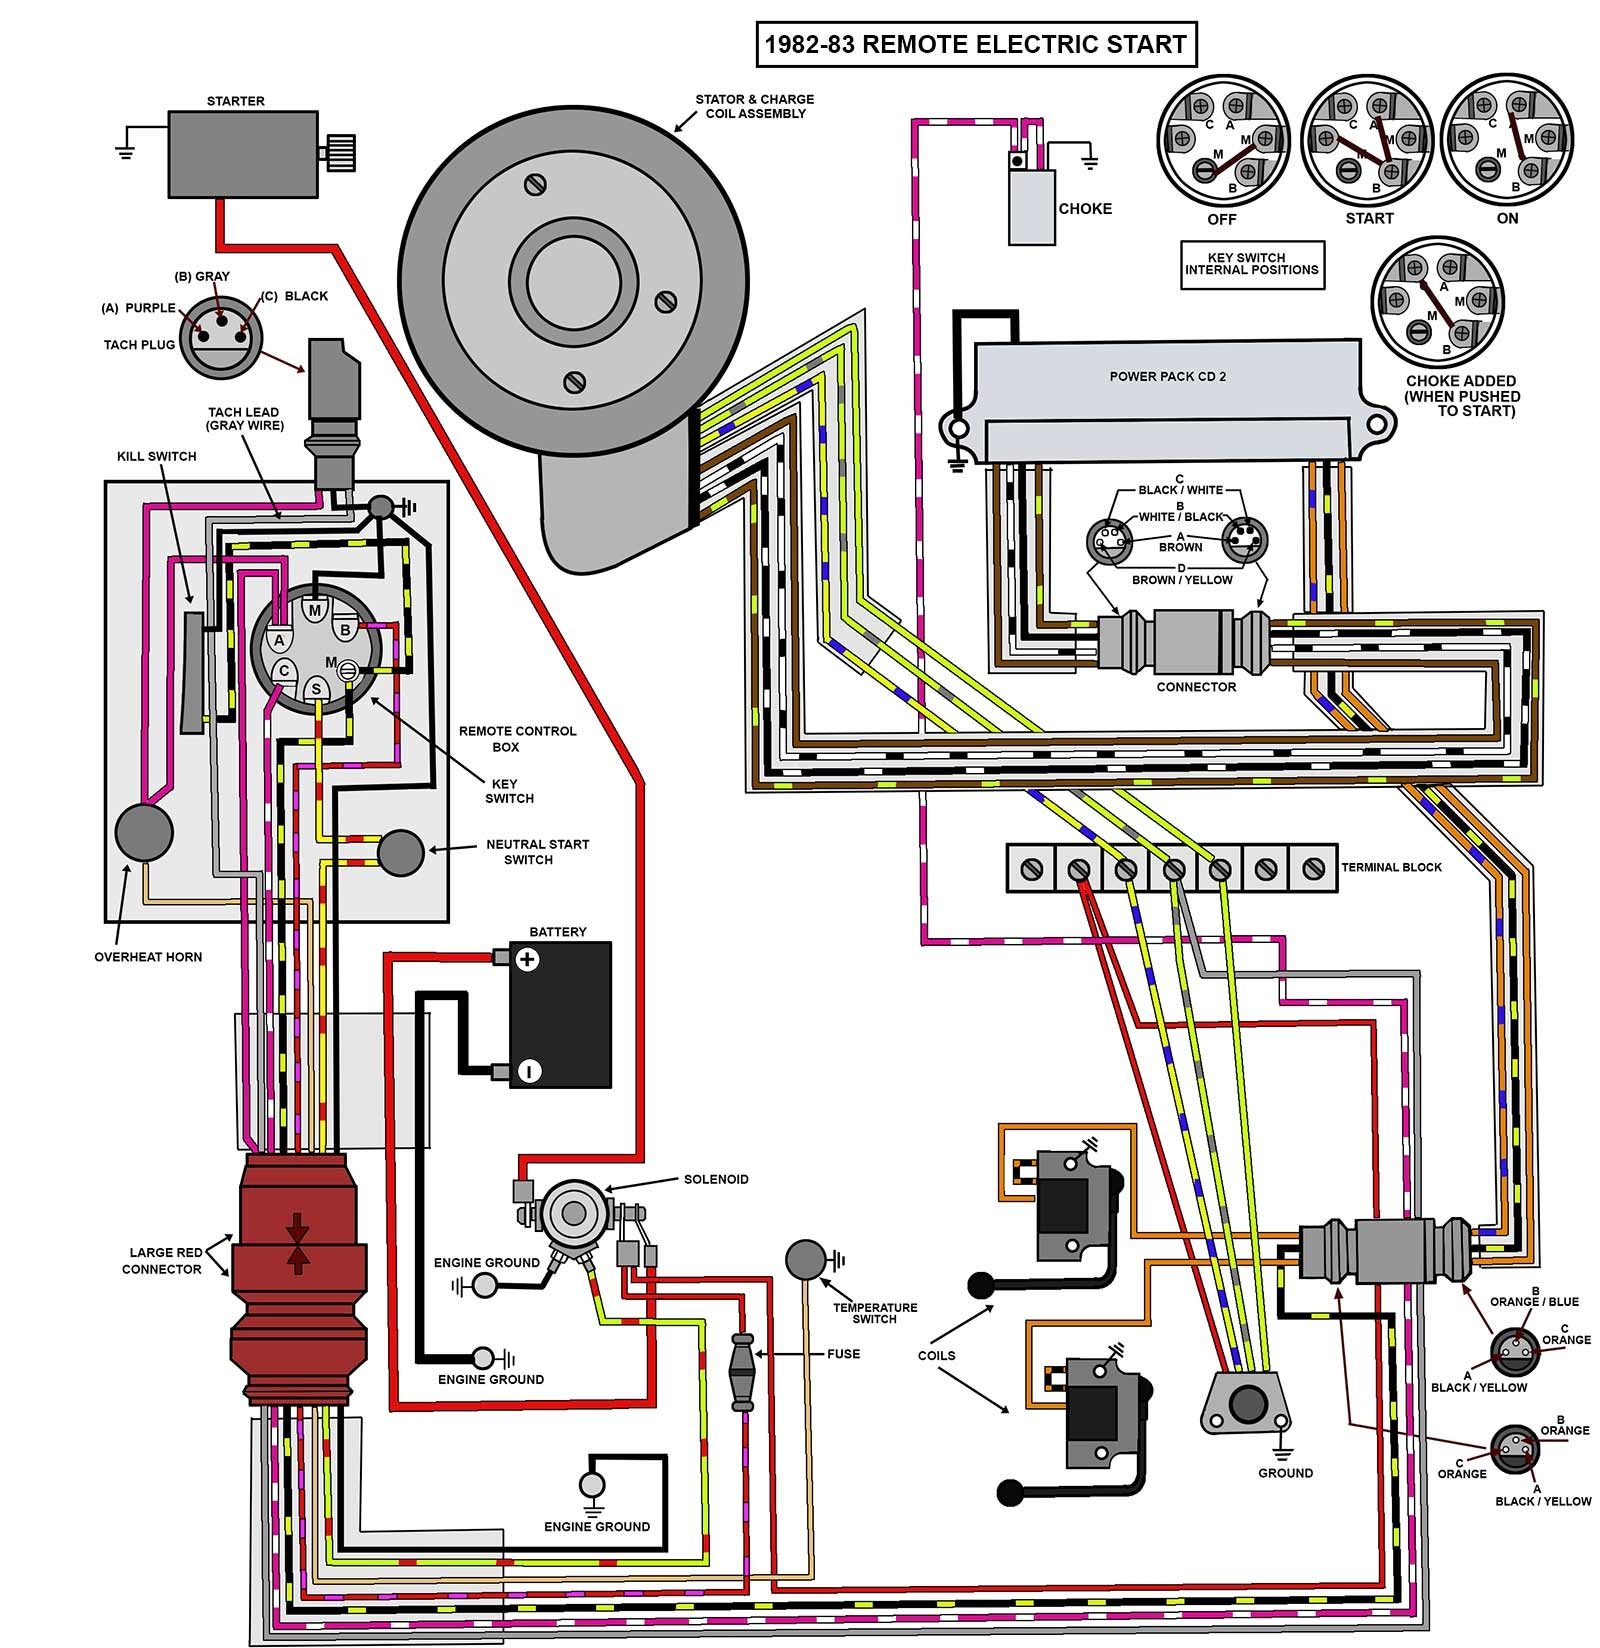 mercury outboard kill switch wiring diagram mercury outboard wiring diagram | free wiring diagram #5